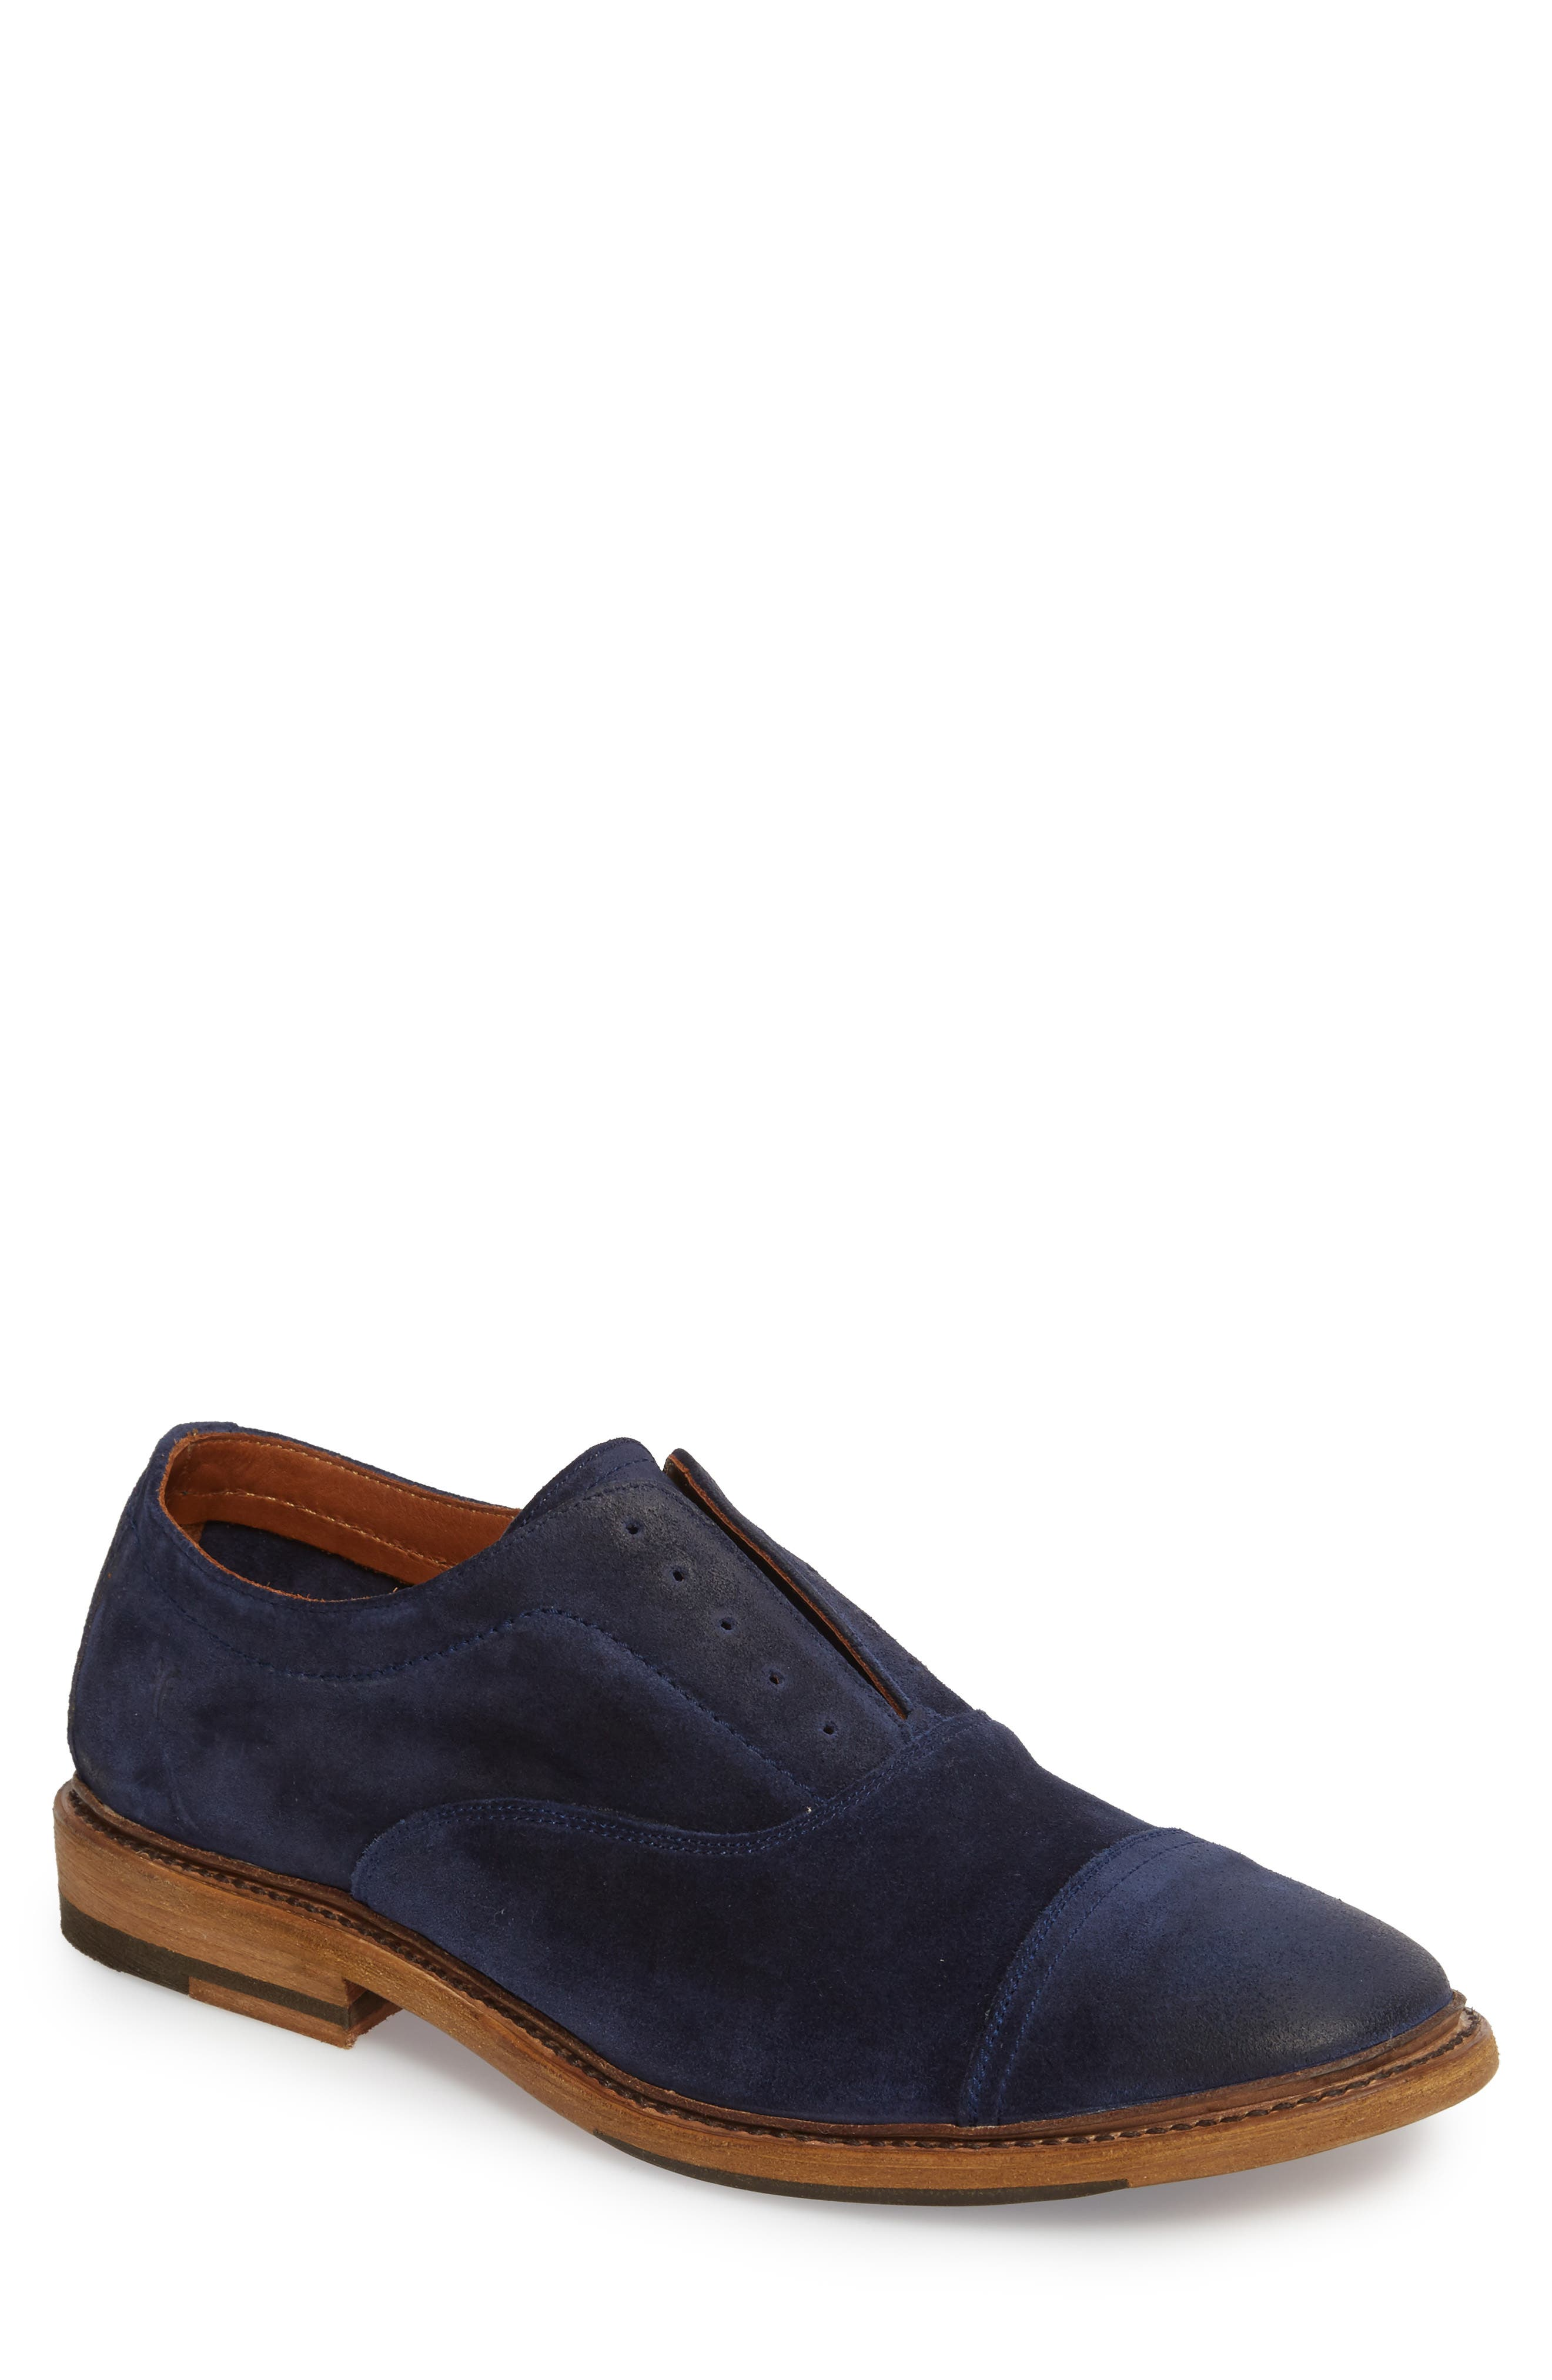 Paul Bal Cap Toe Oxford,                             Main thumbnail 1, color,                             Navy Suede